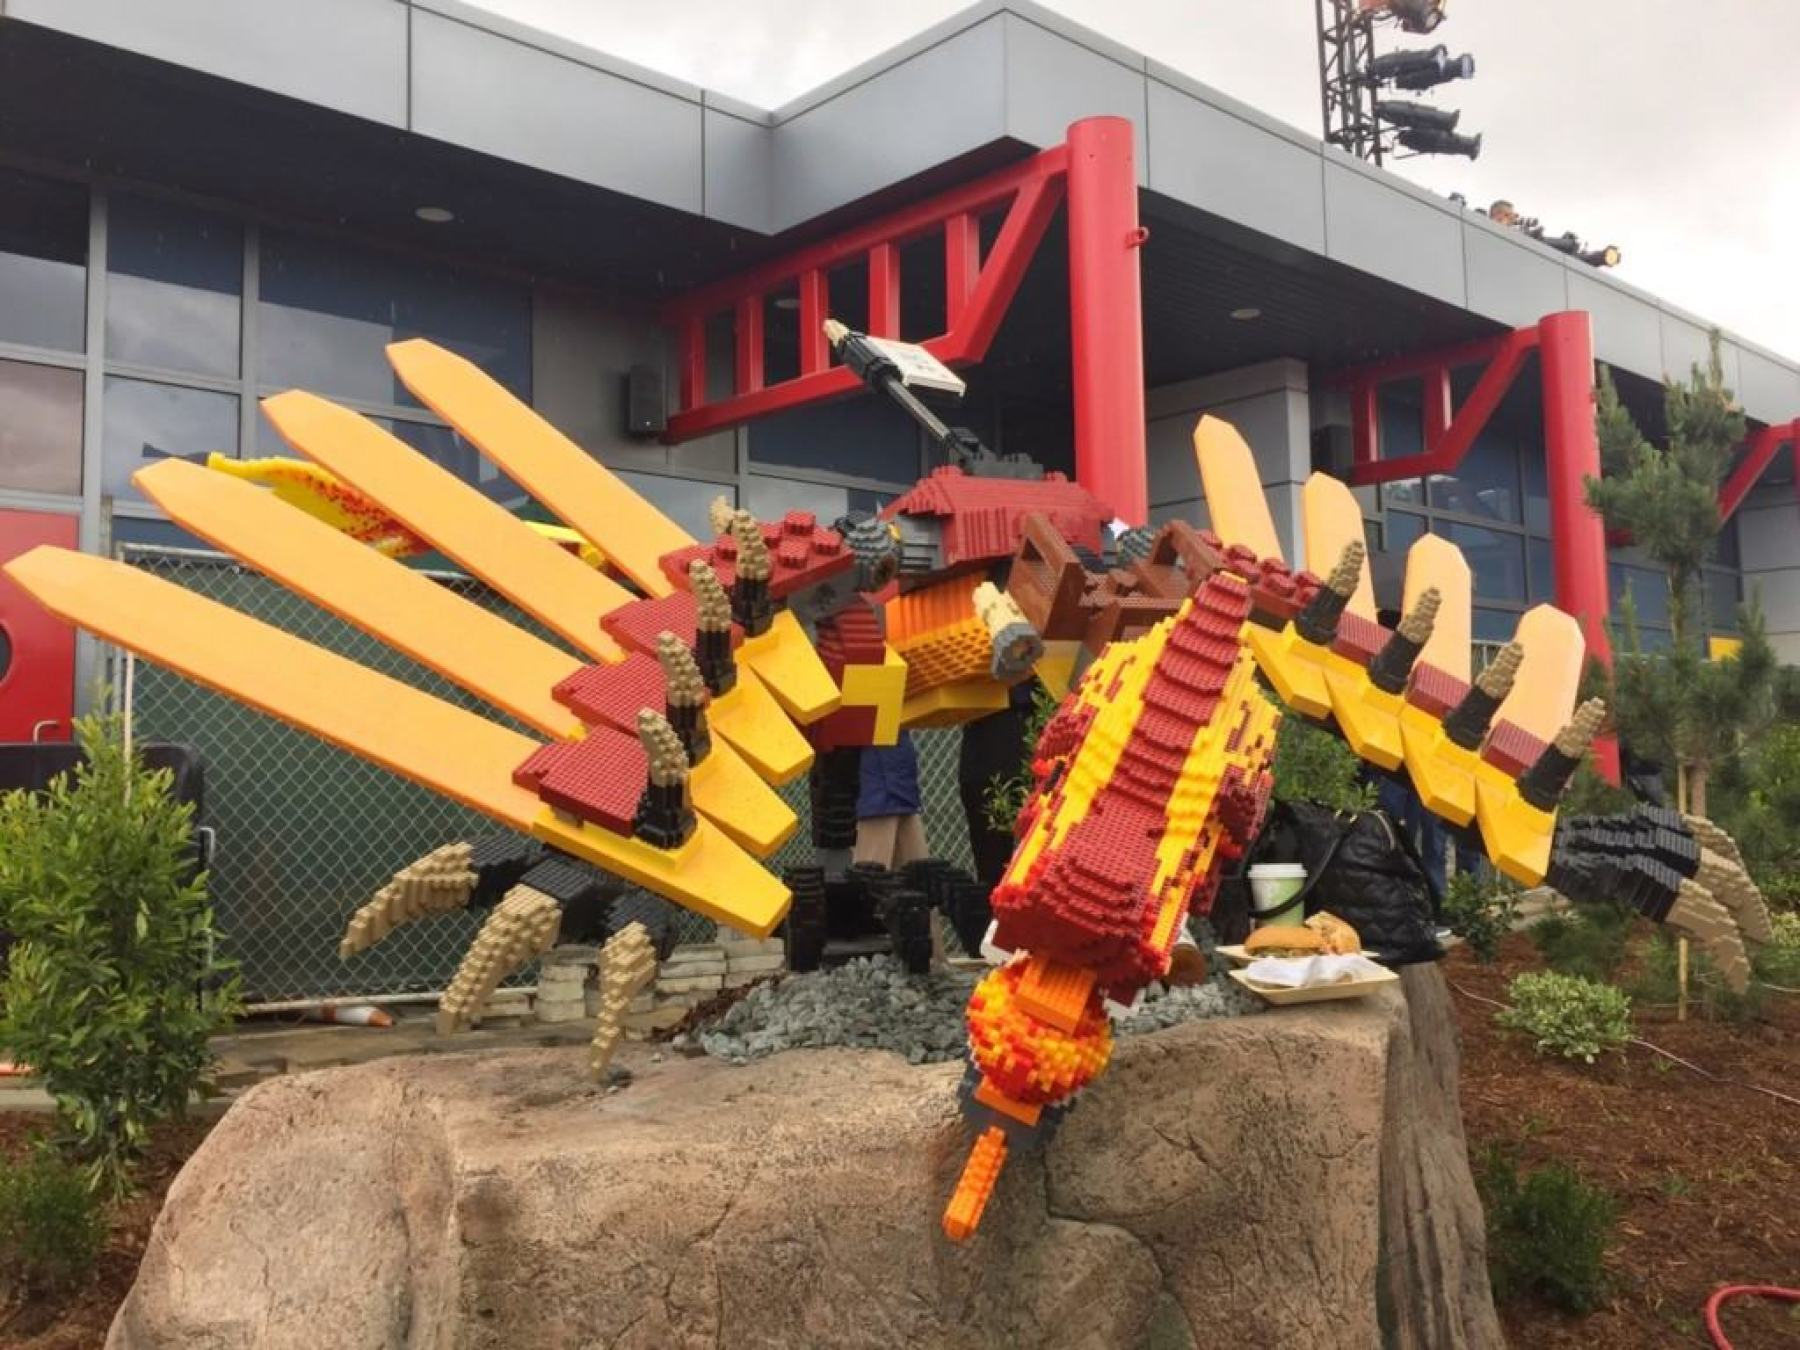 NINJAGO World features five attractions all designed to test guests balance, agility, speed and creativity: Zane's Temple Build, Kai's Spinners, Cole's Rock Climb, Jay's Lightning Drill and NINJAGO The Ride.